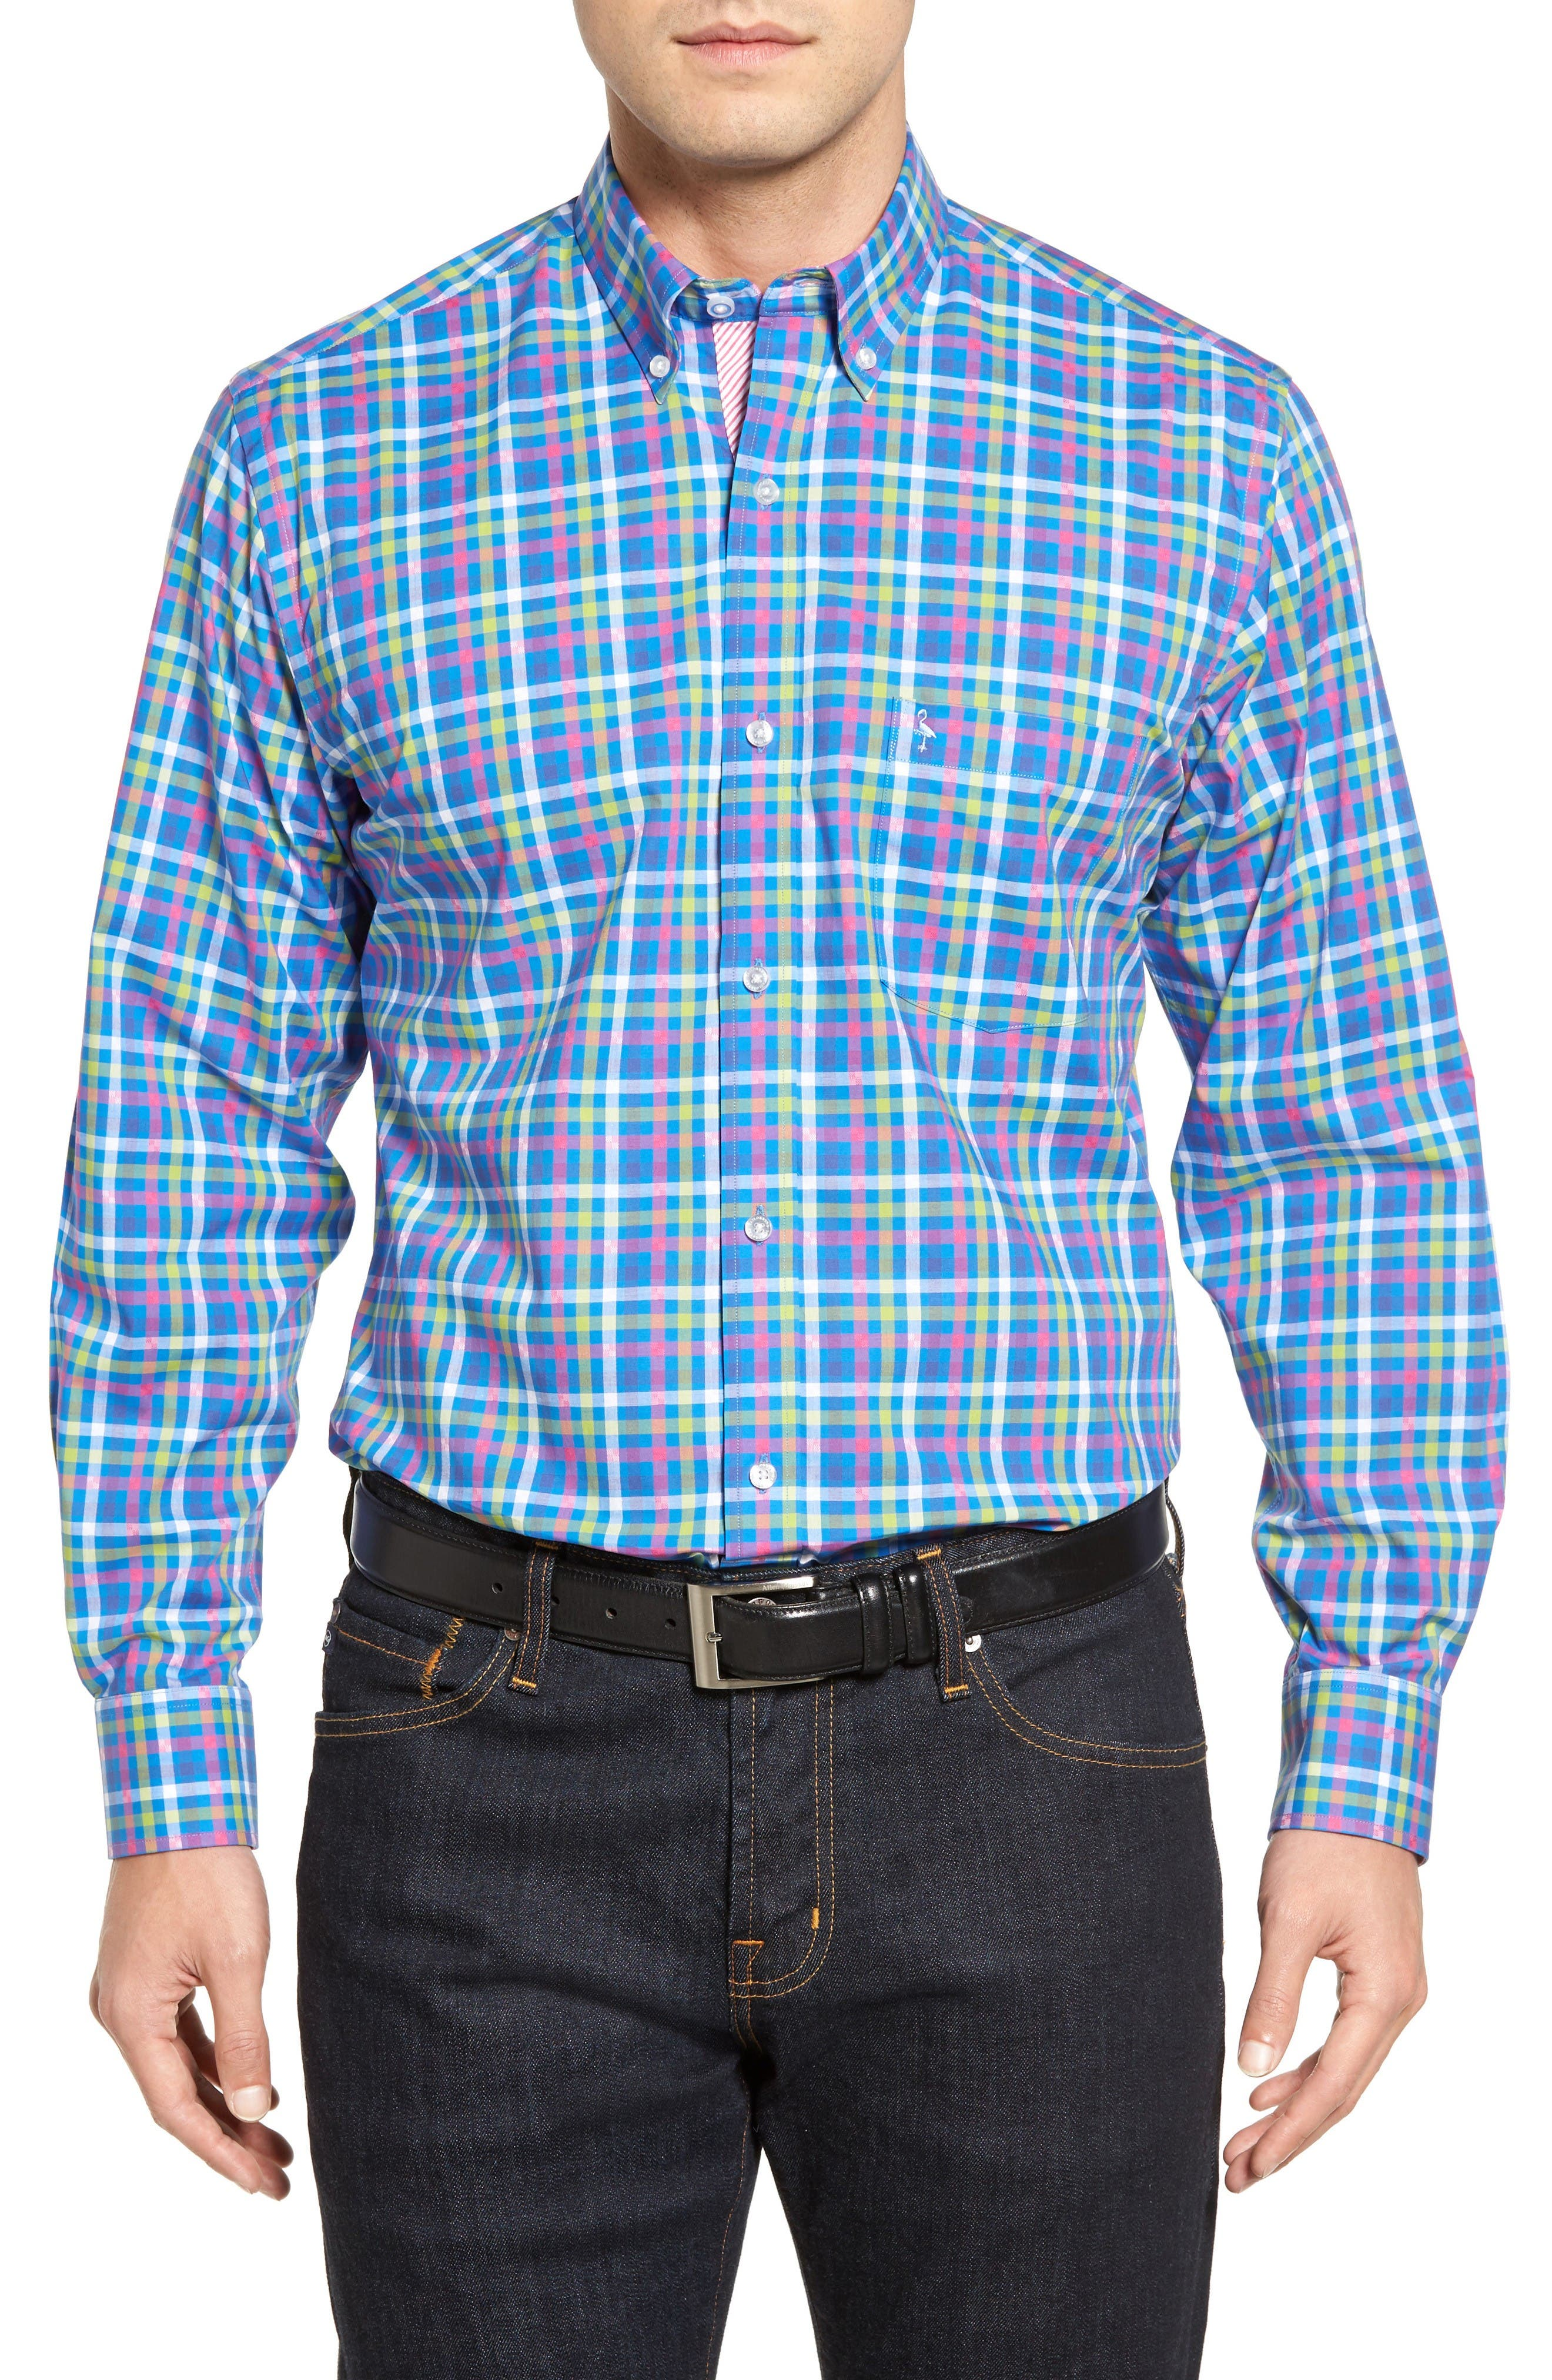 Alternate Image 1 Selected - TailorByrd Plum Check Sport Shirt